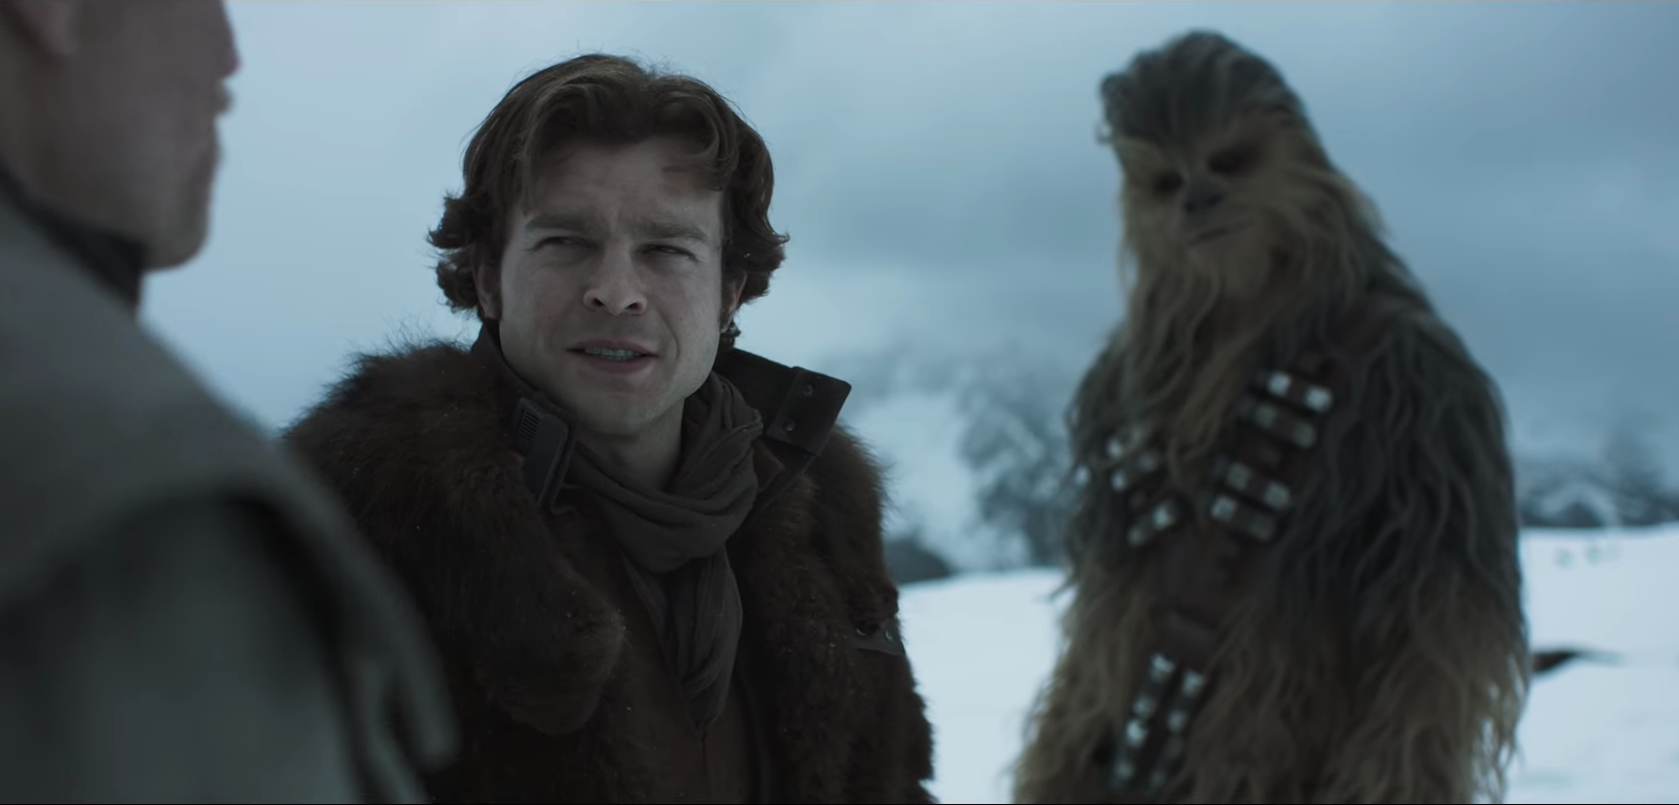 Solo: A Star Wars Story director Ron Howard explains why he took on troubled project